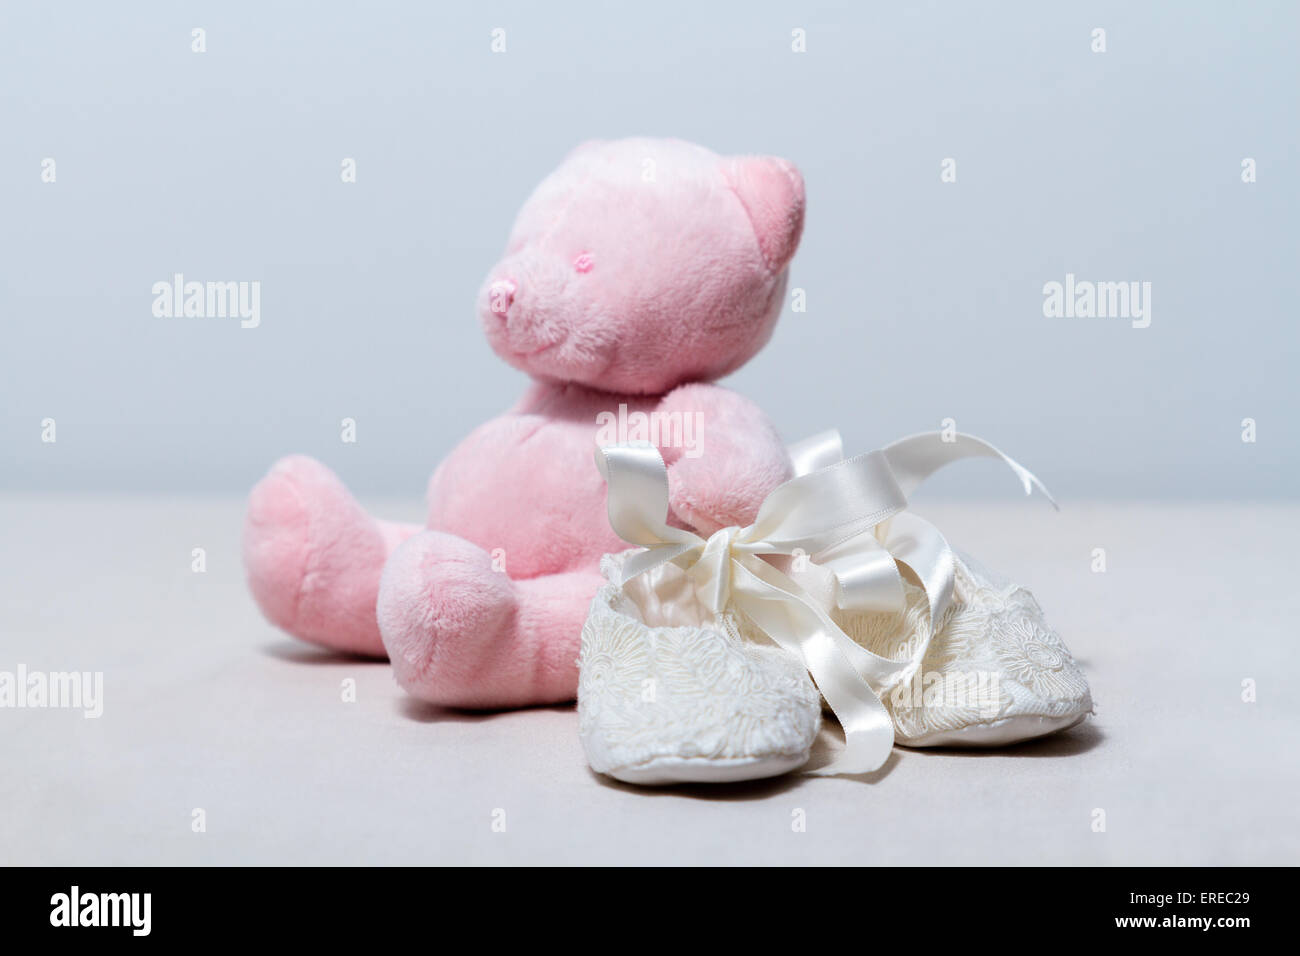 White lace baby booties and a cute pink teddy bear. - Stock Image